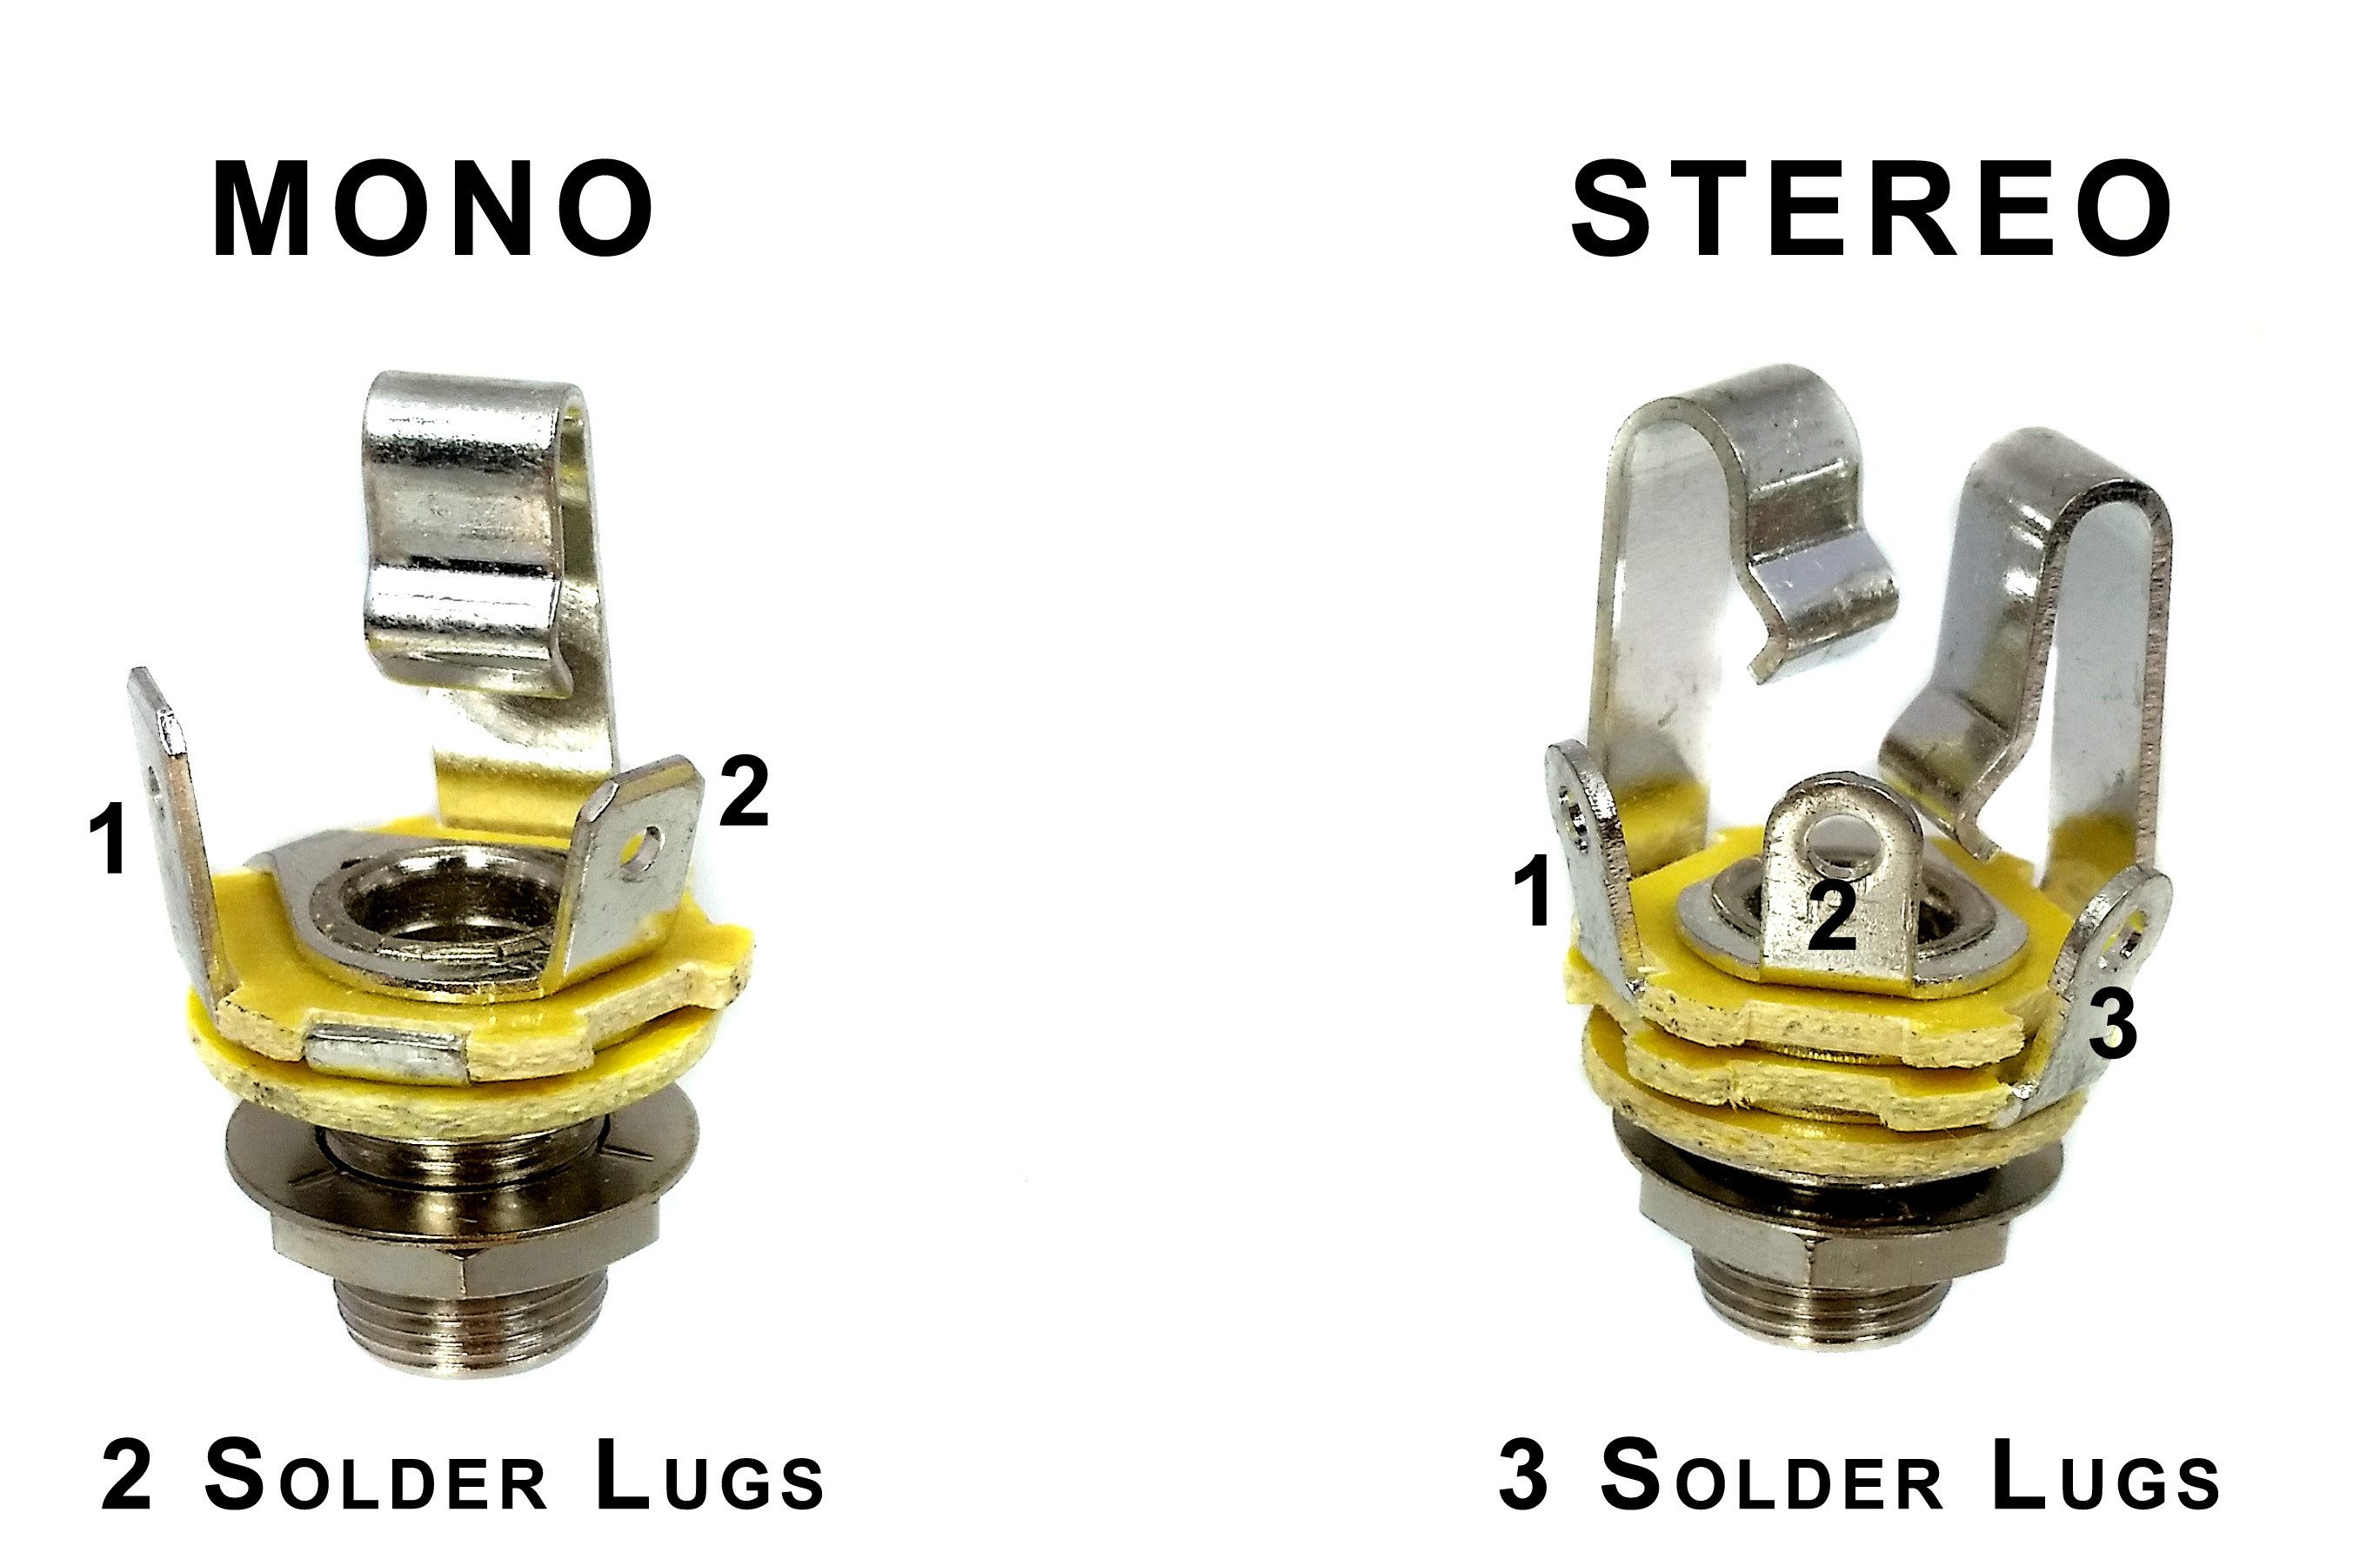 3 Pin Stereo Jack Socket Wiring The Portal And Forum Of Balanced Audio Diagram Guitar Todays Rh 19 12 7 1813weddingbarn Com